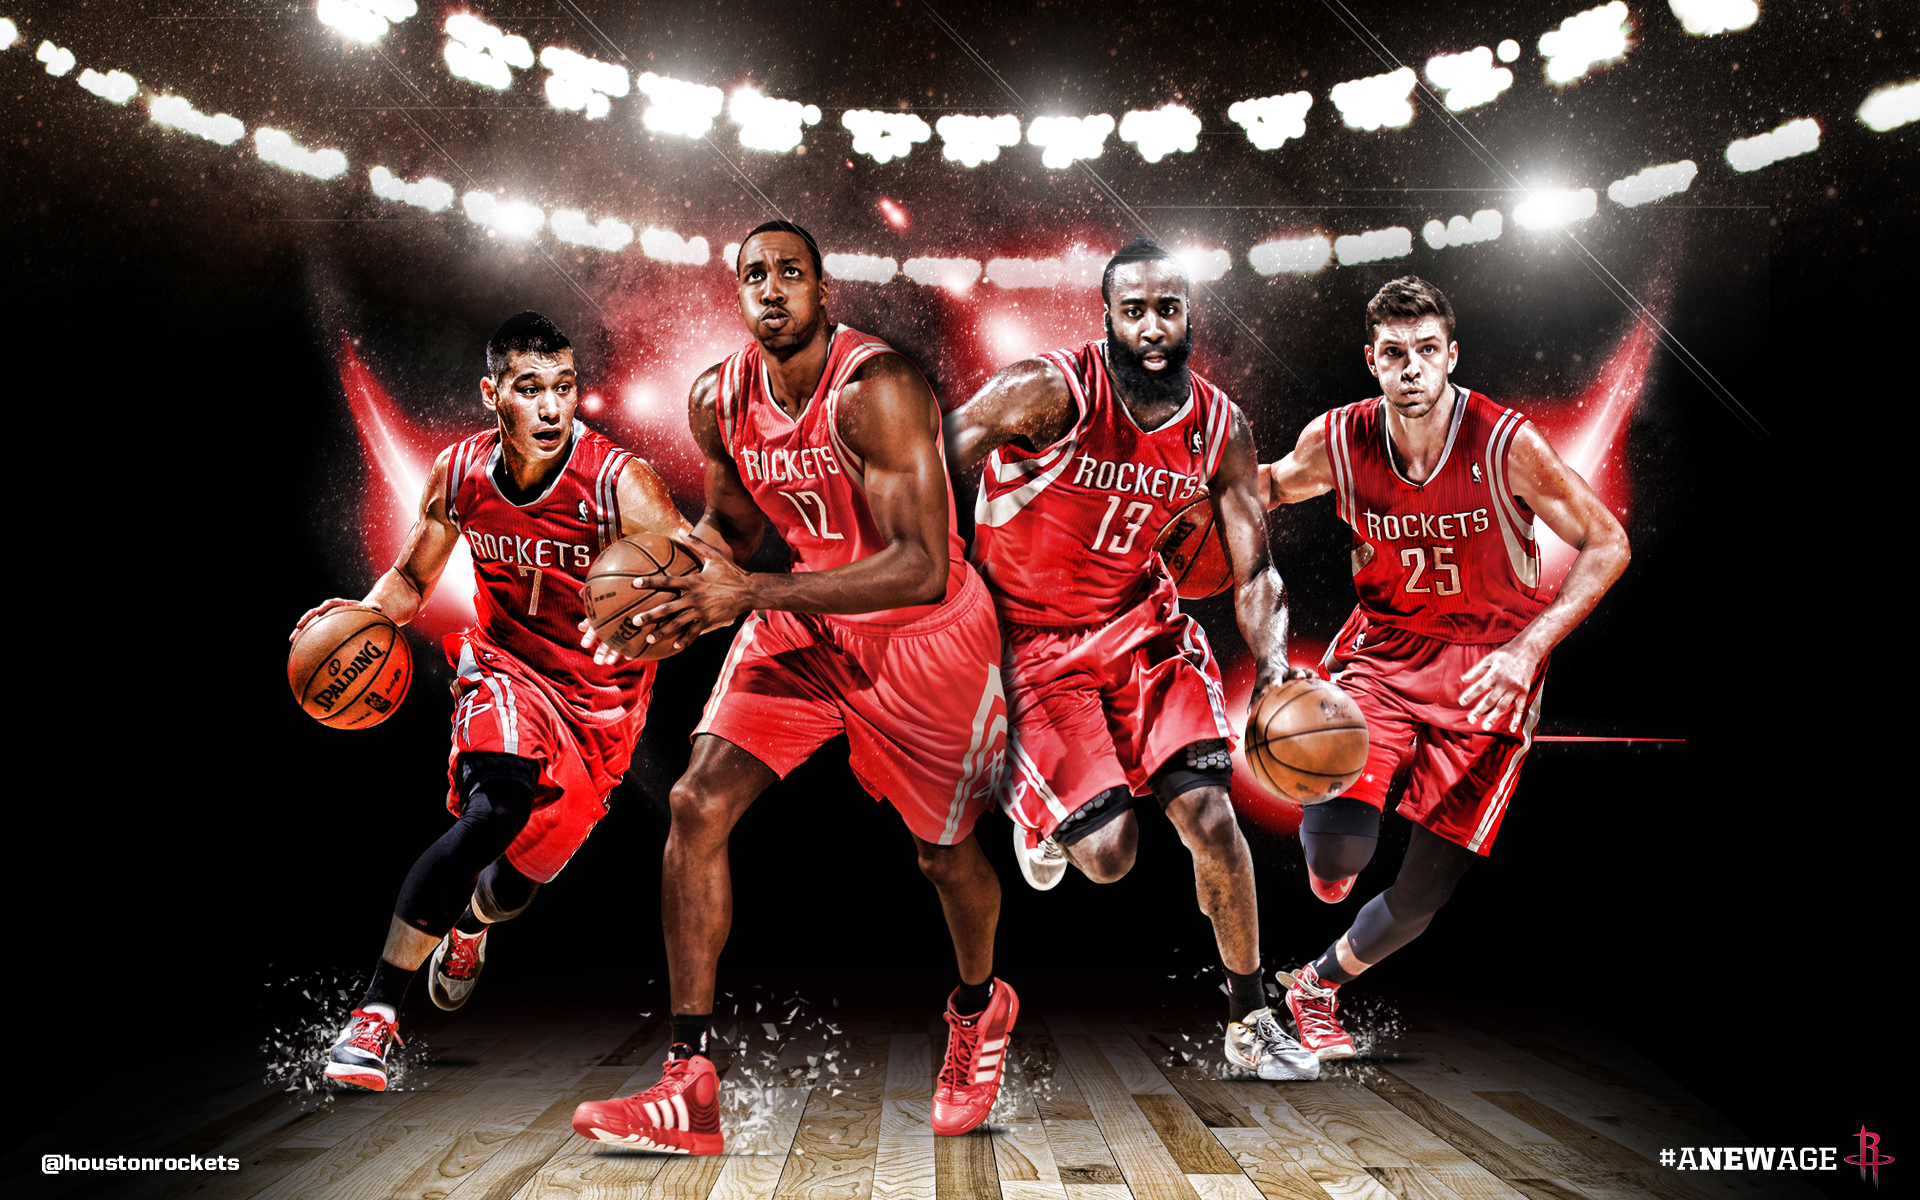 Houston Rockets Pics, Sports Collection